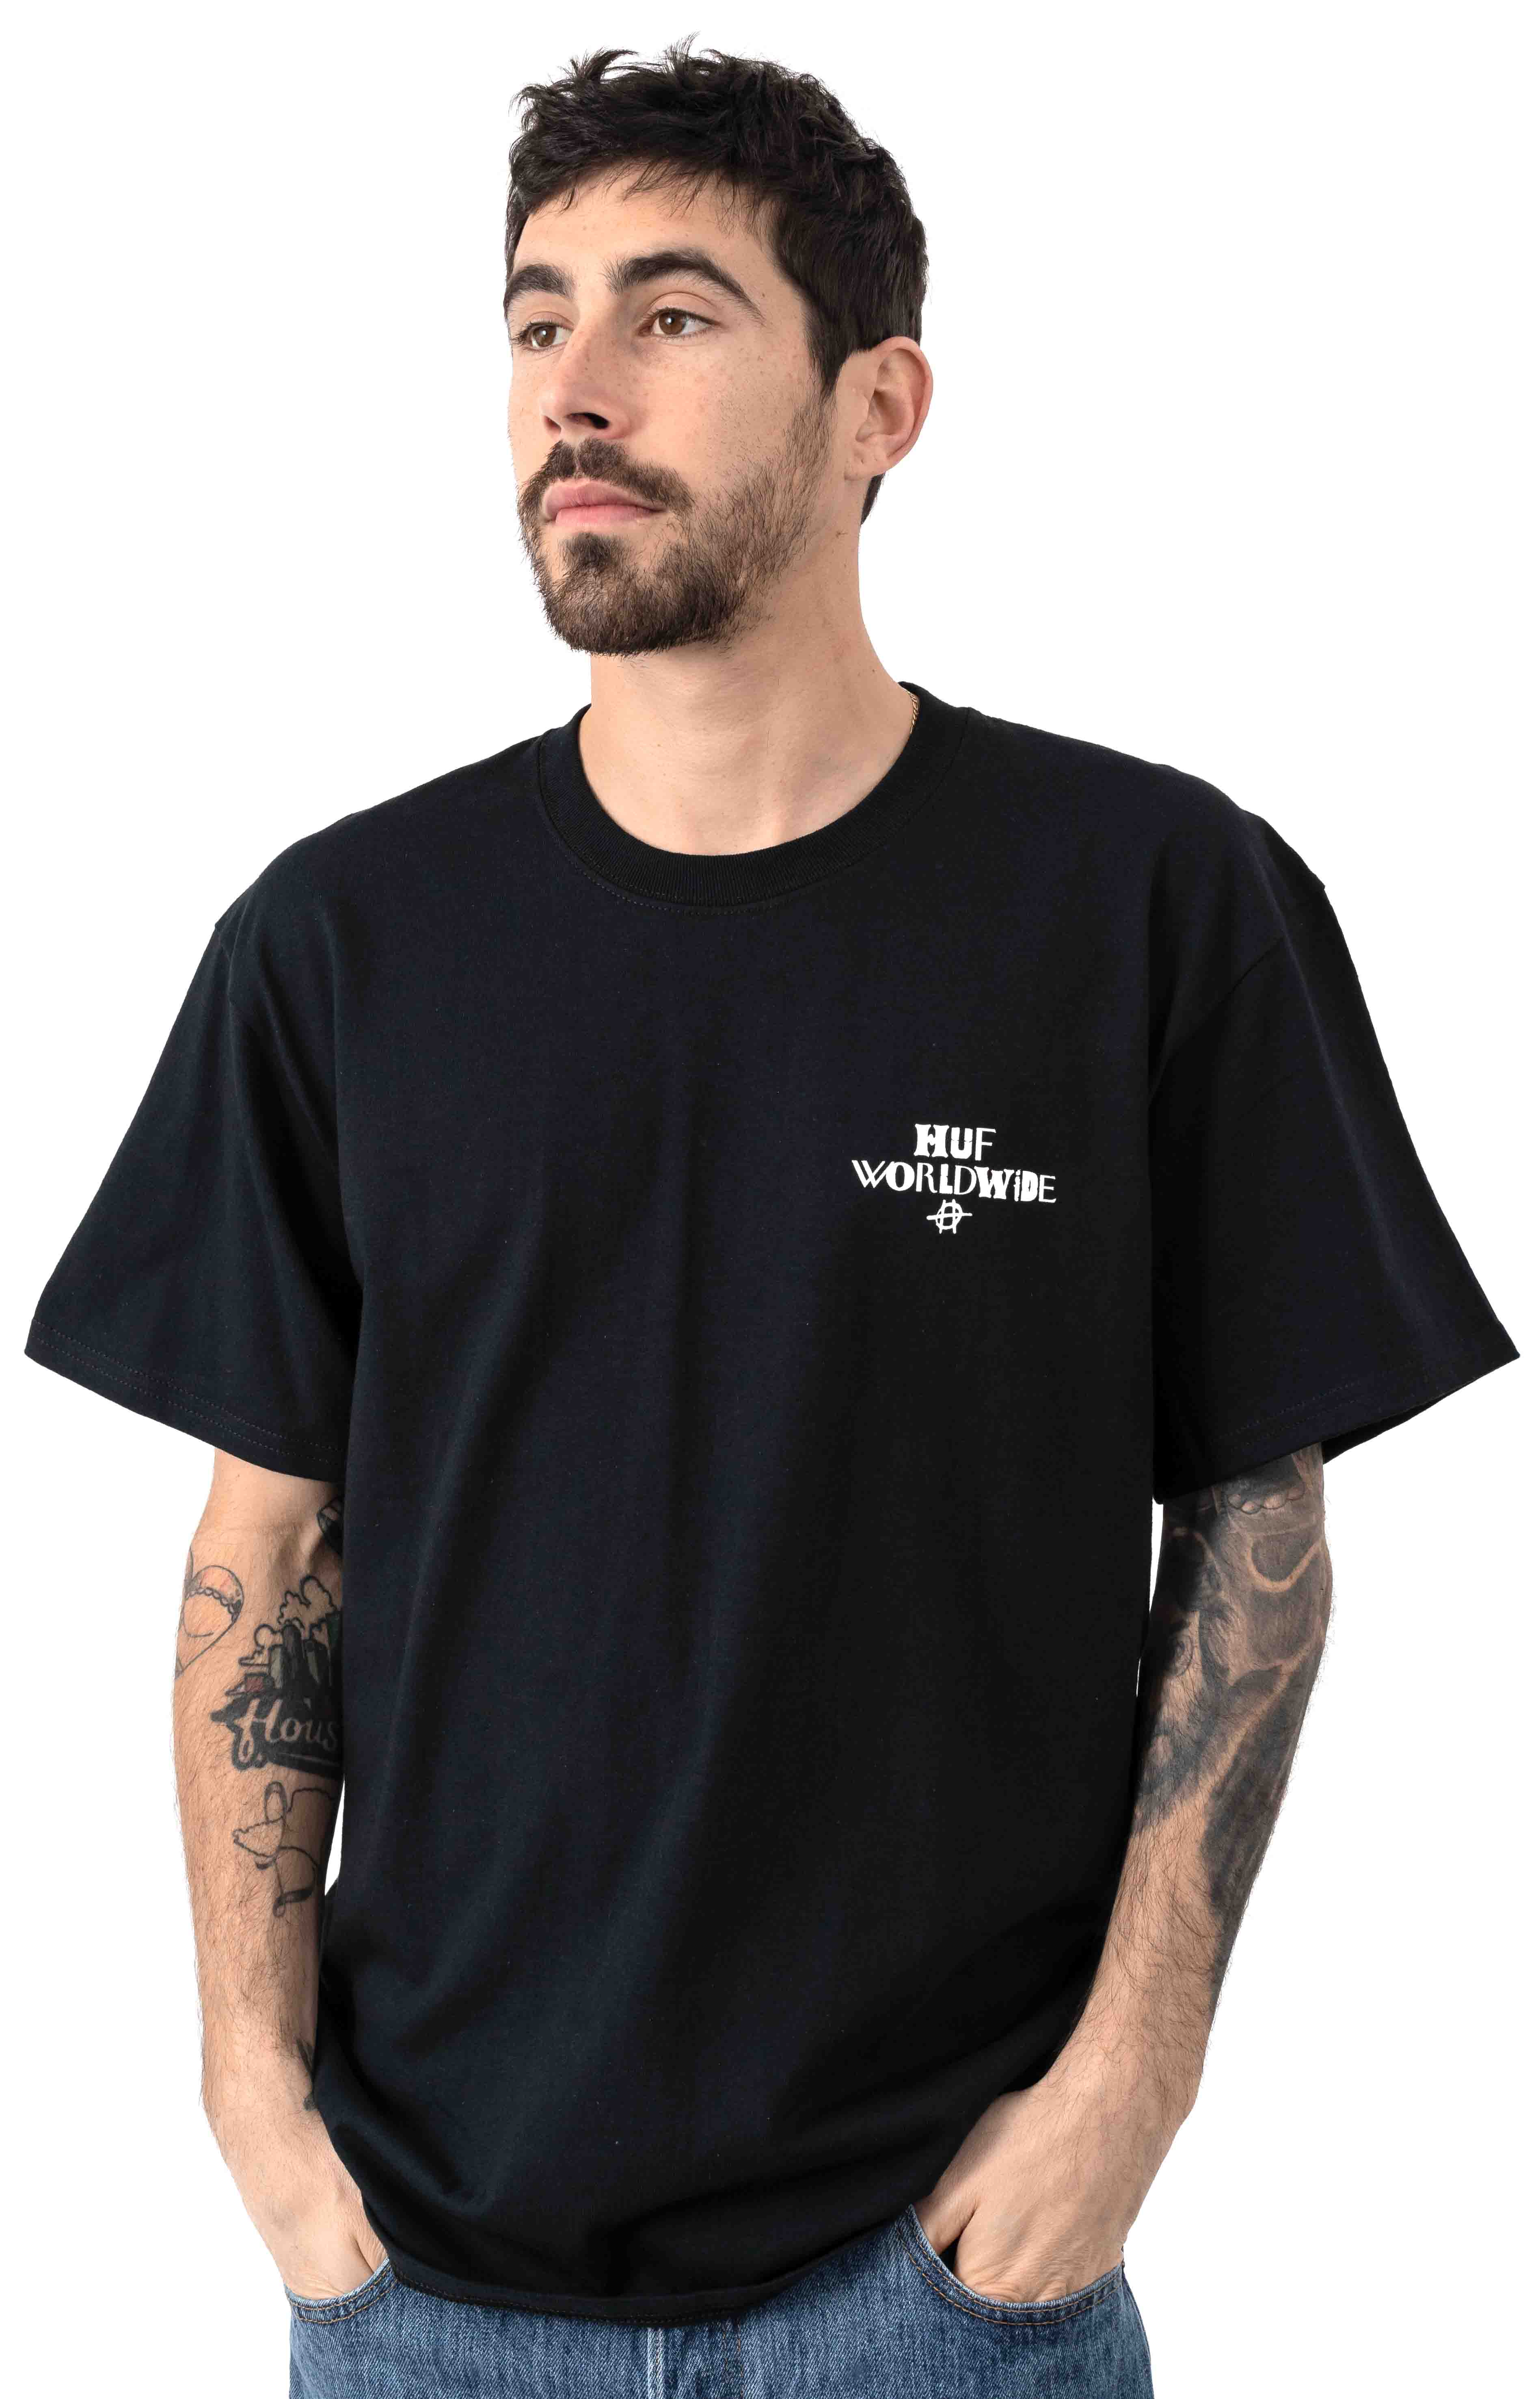 Hoods T-Shirt - Black 2